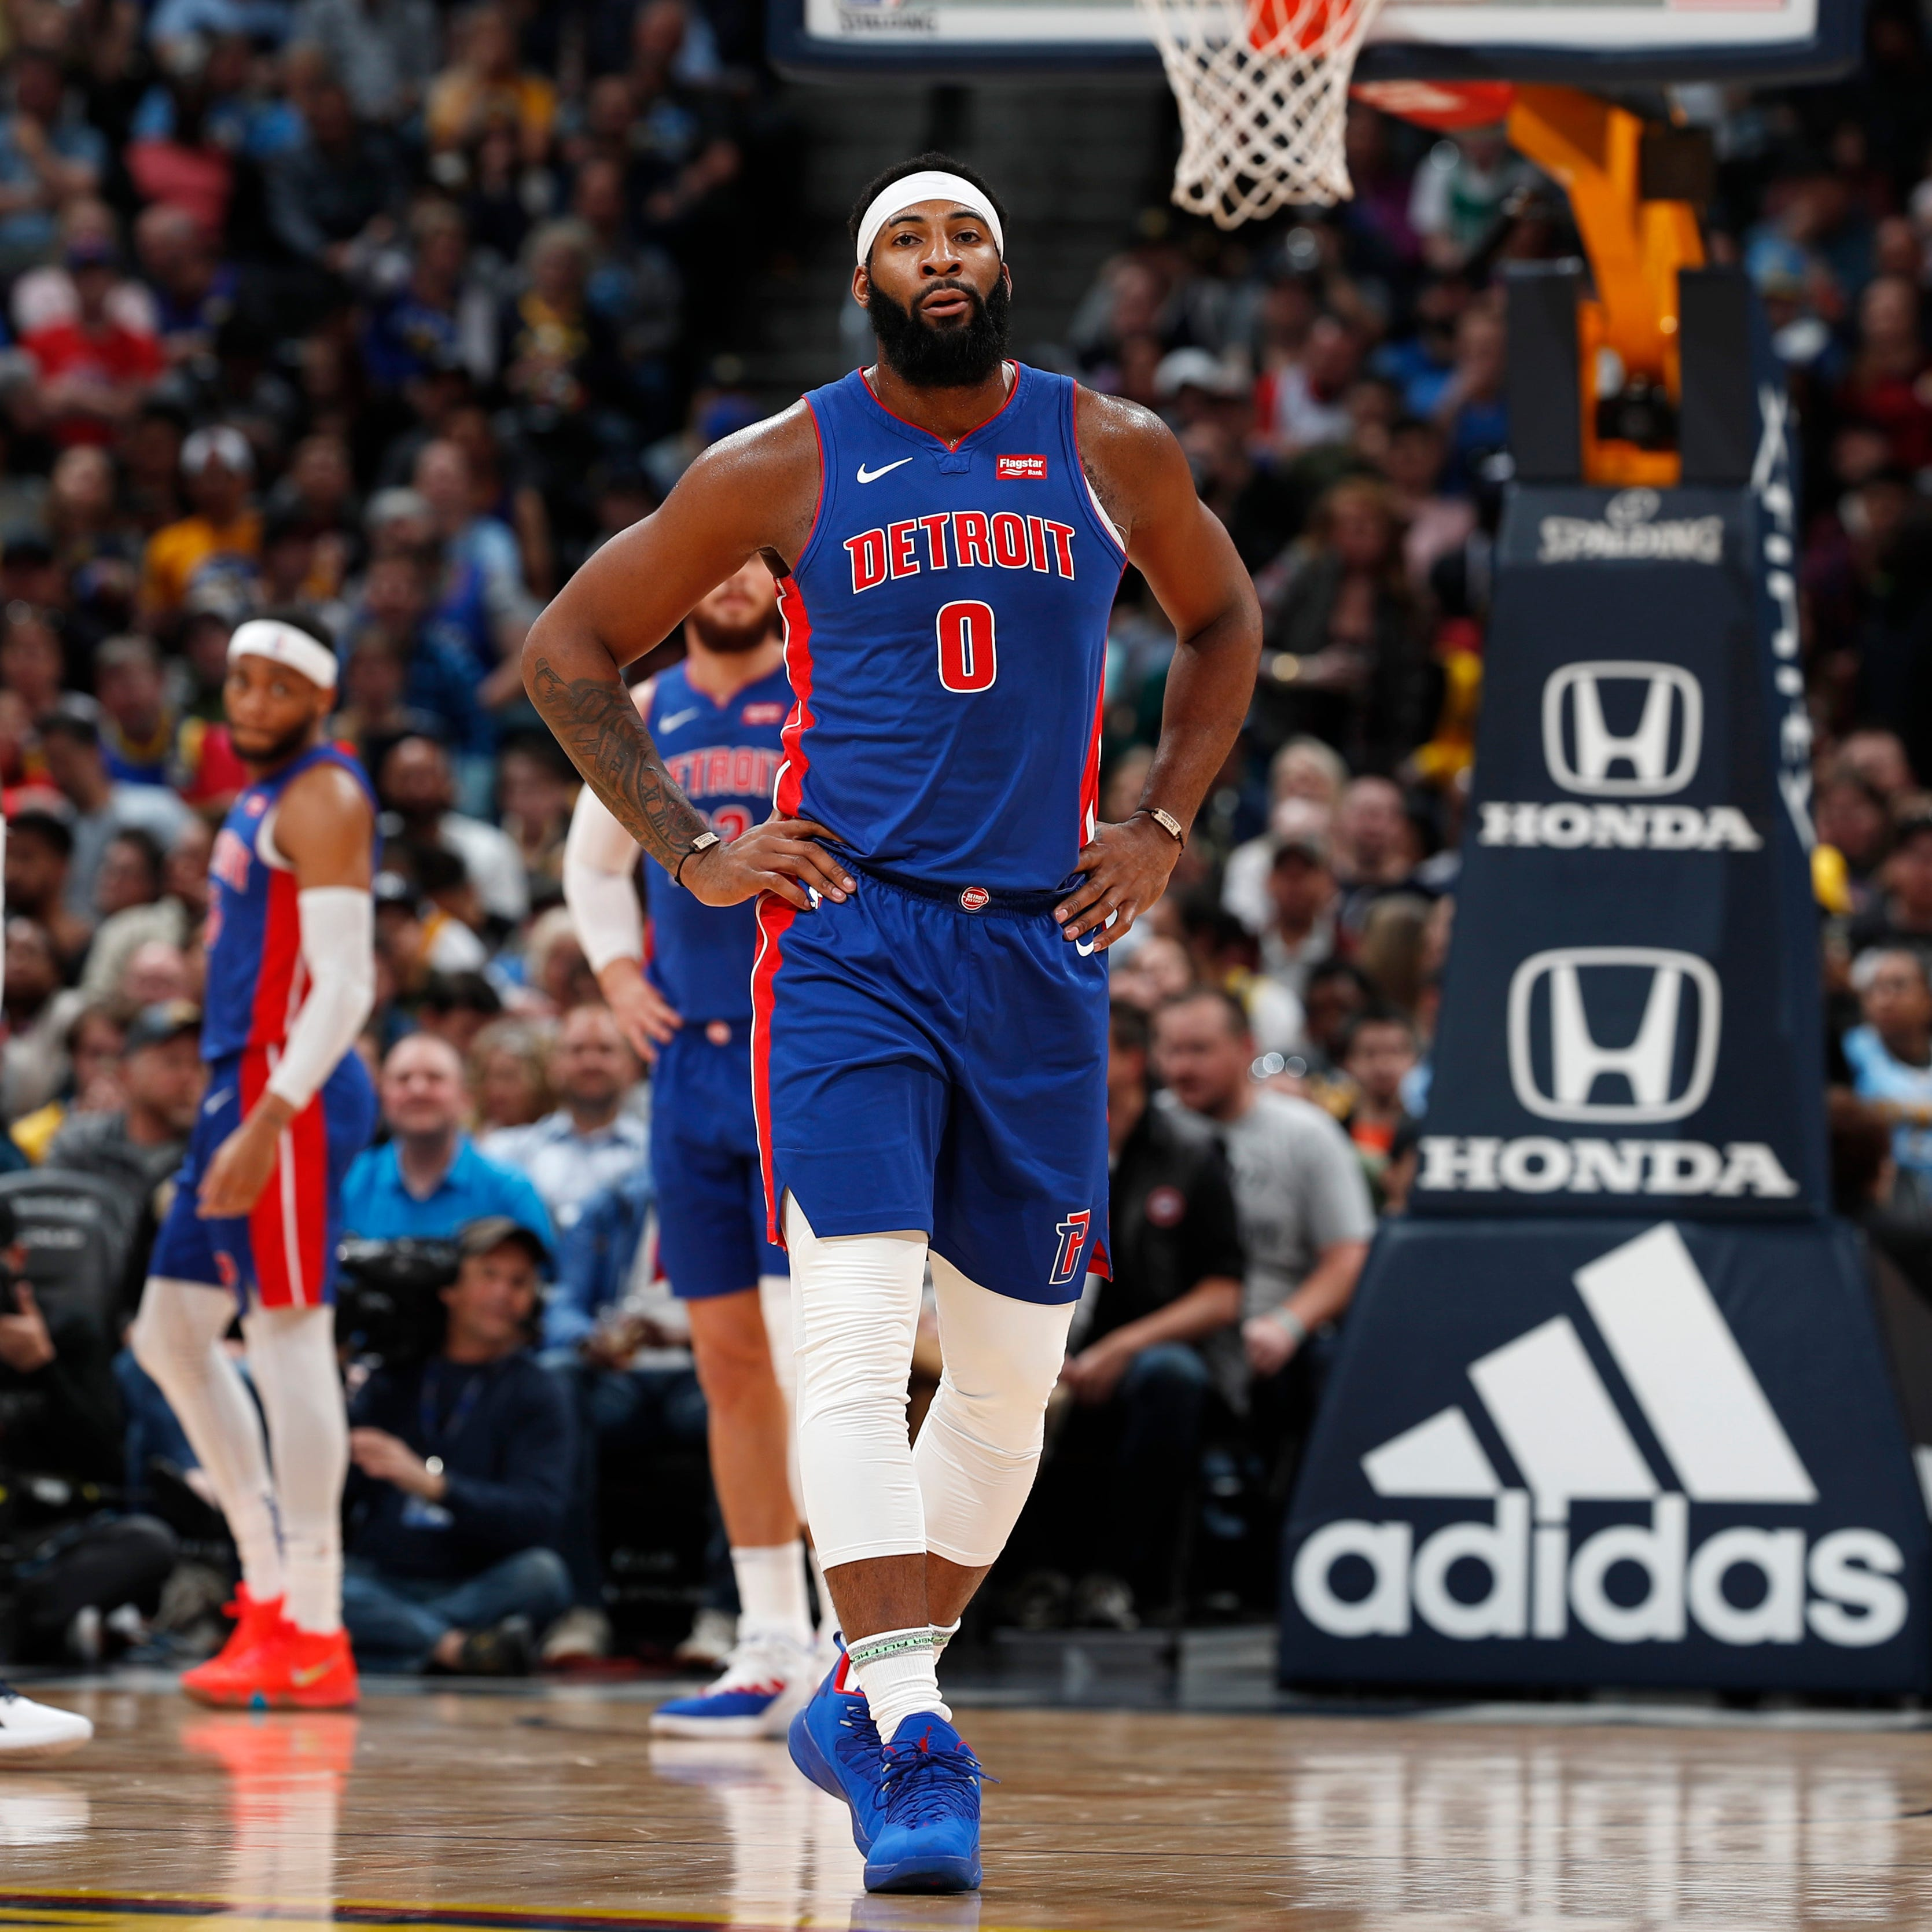 Detroit Pistons' comeback fails in loss at Denver, loosening playoff grip